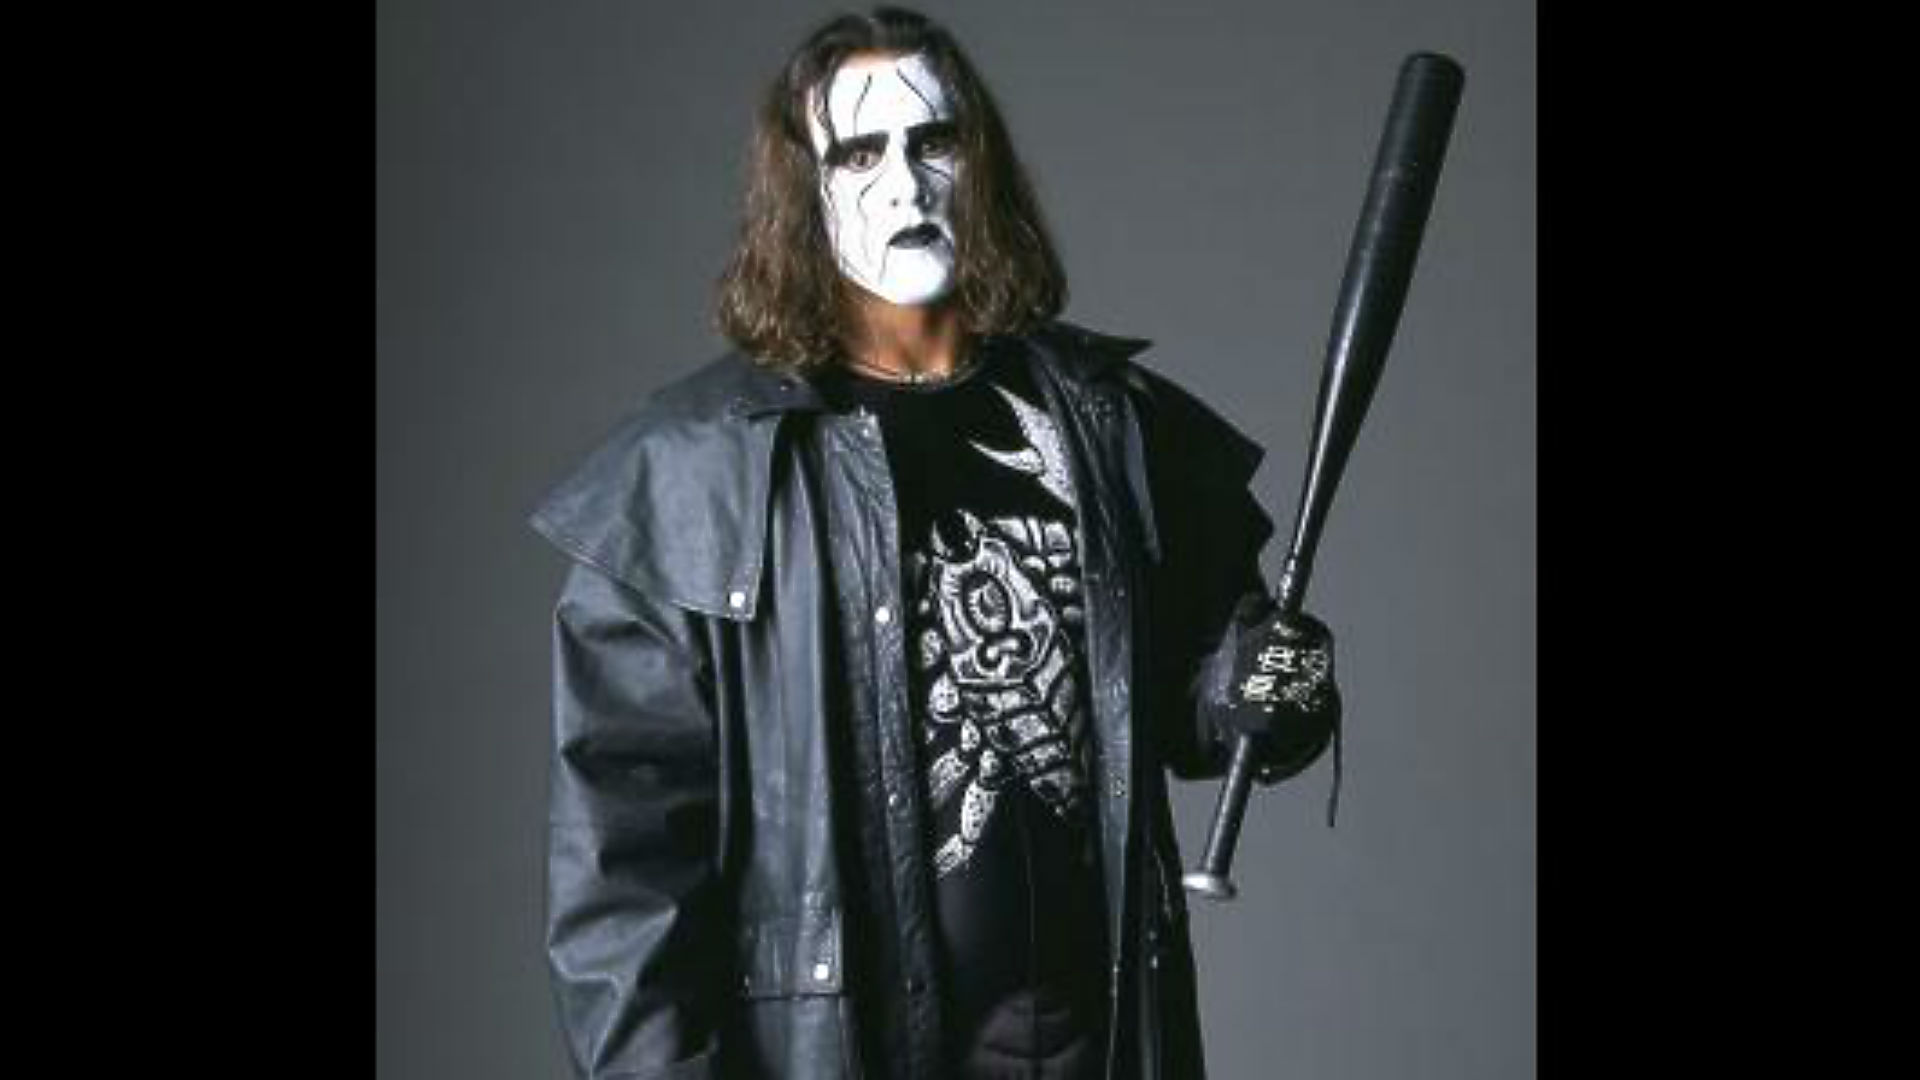 Wcw Bogus Sting: The Best And Worst Moments Of Sting's Career In WCW, TNA